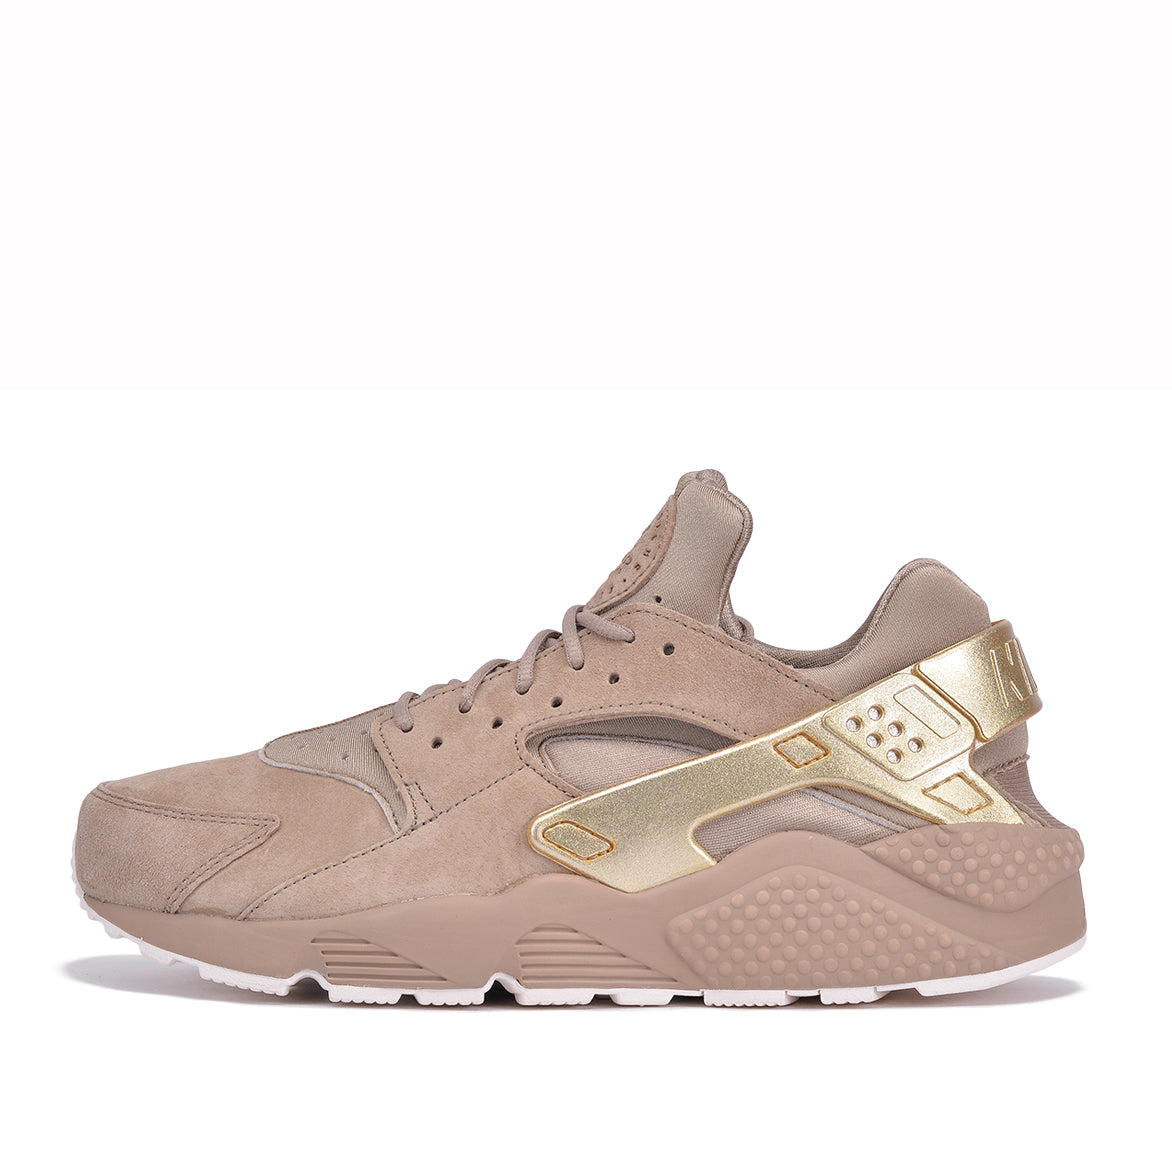 4bc45c5e1027 AIR HUARACHE RUN PRM - KHAKI   METALLIC GOLD COIN